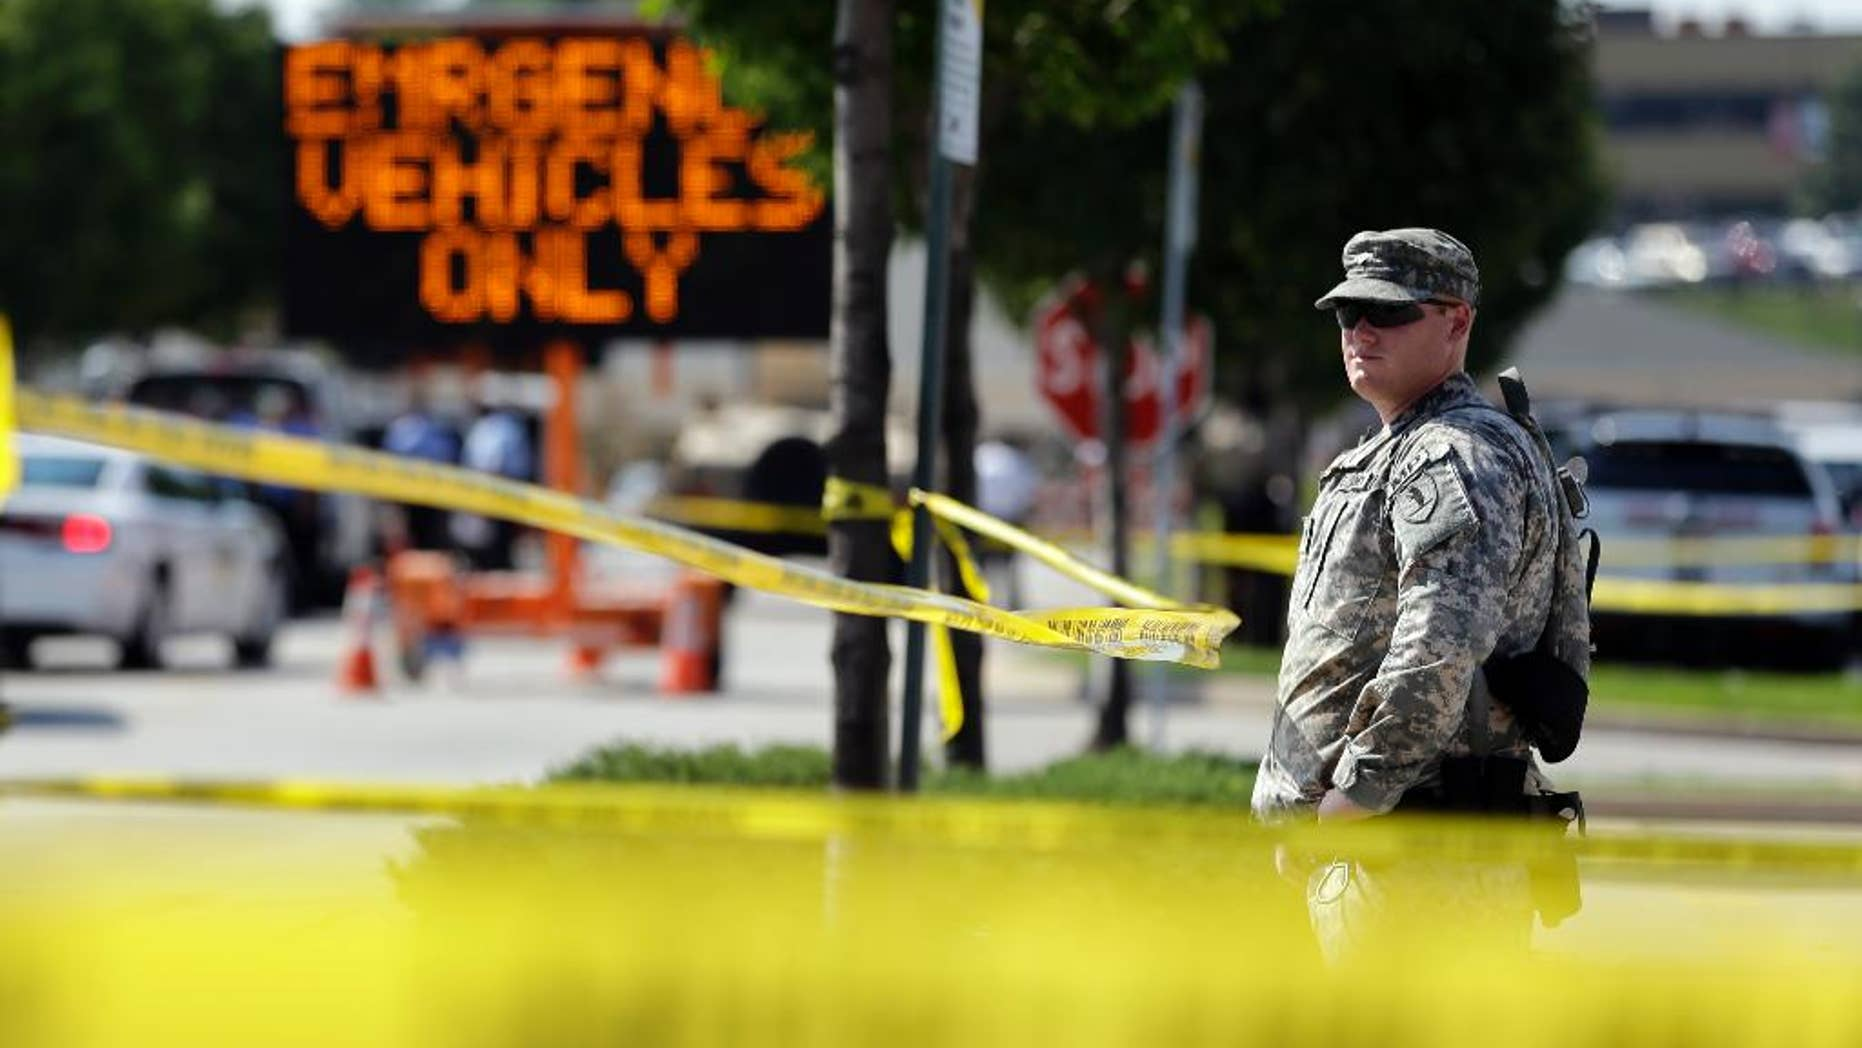 """A member of the Missouri National Guard stands guard at a police command post Tuesday, Aug. 19, 2014, in Ferguson, Mo. Ferguson's leaders urged residents Tuesday to stay home after dark to """"allow peace to settle in"""" and pledged several actions to reconnect with the predominantly black community in the St. Louis suburb where the fatal shooting of 18-year-old Michael Brown has sparked nightly clashes between protesters and police. (AP Photo/Jeff Roberson)"""